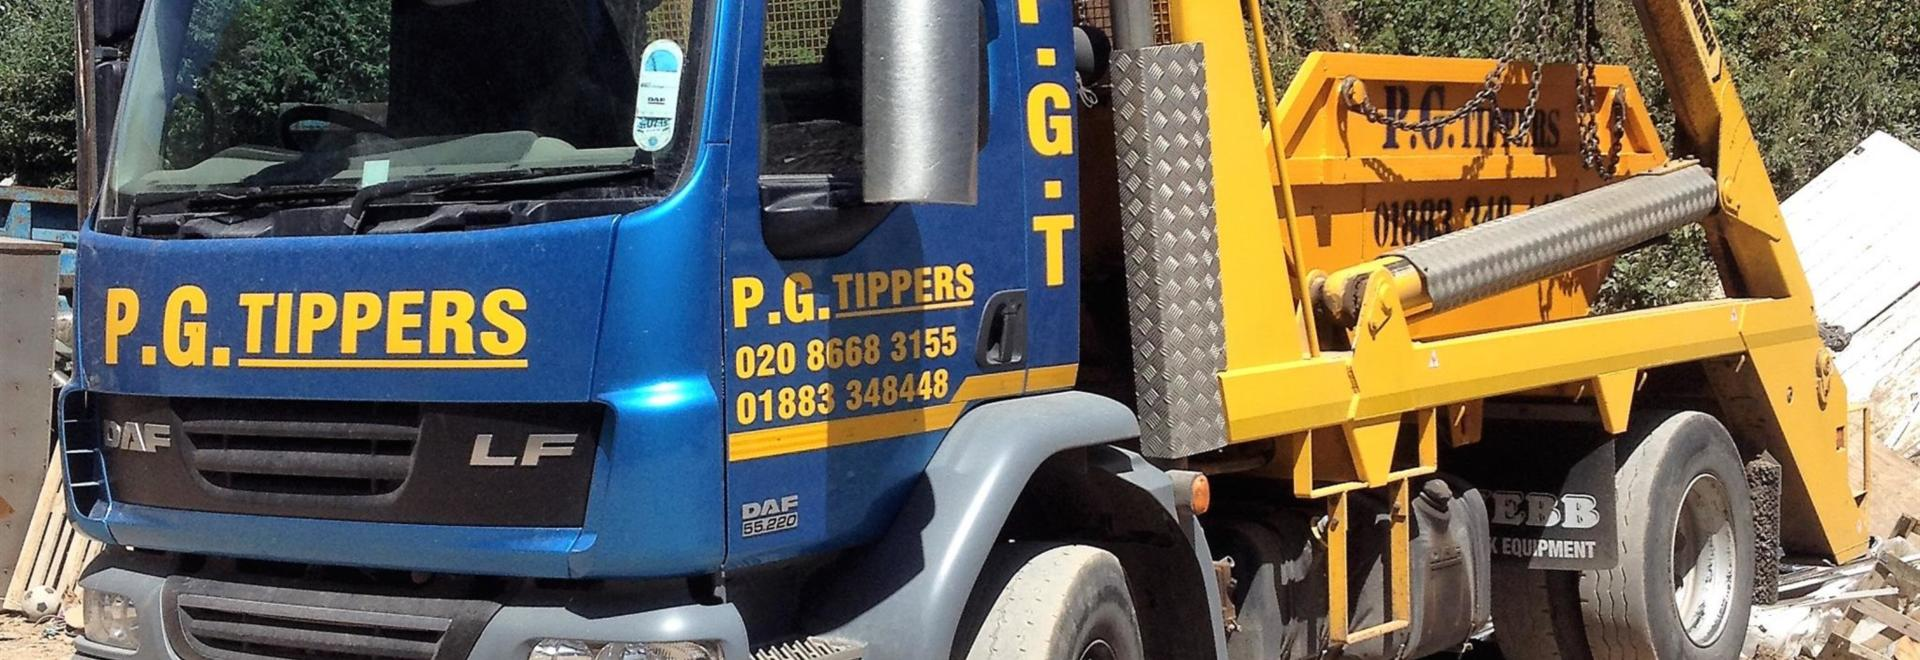 pg tippers skip hire in caterham local surrounding areas. Black Bedroom Furniture Sets. Home Design Ideas